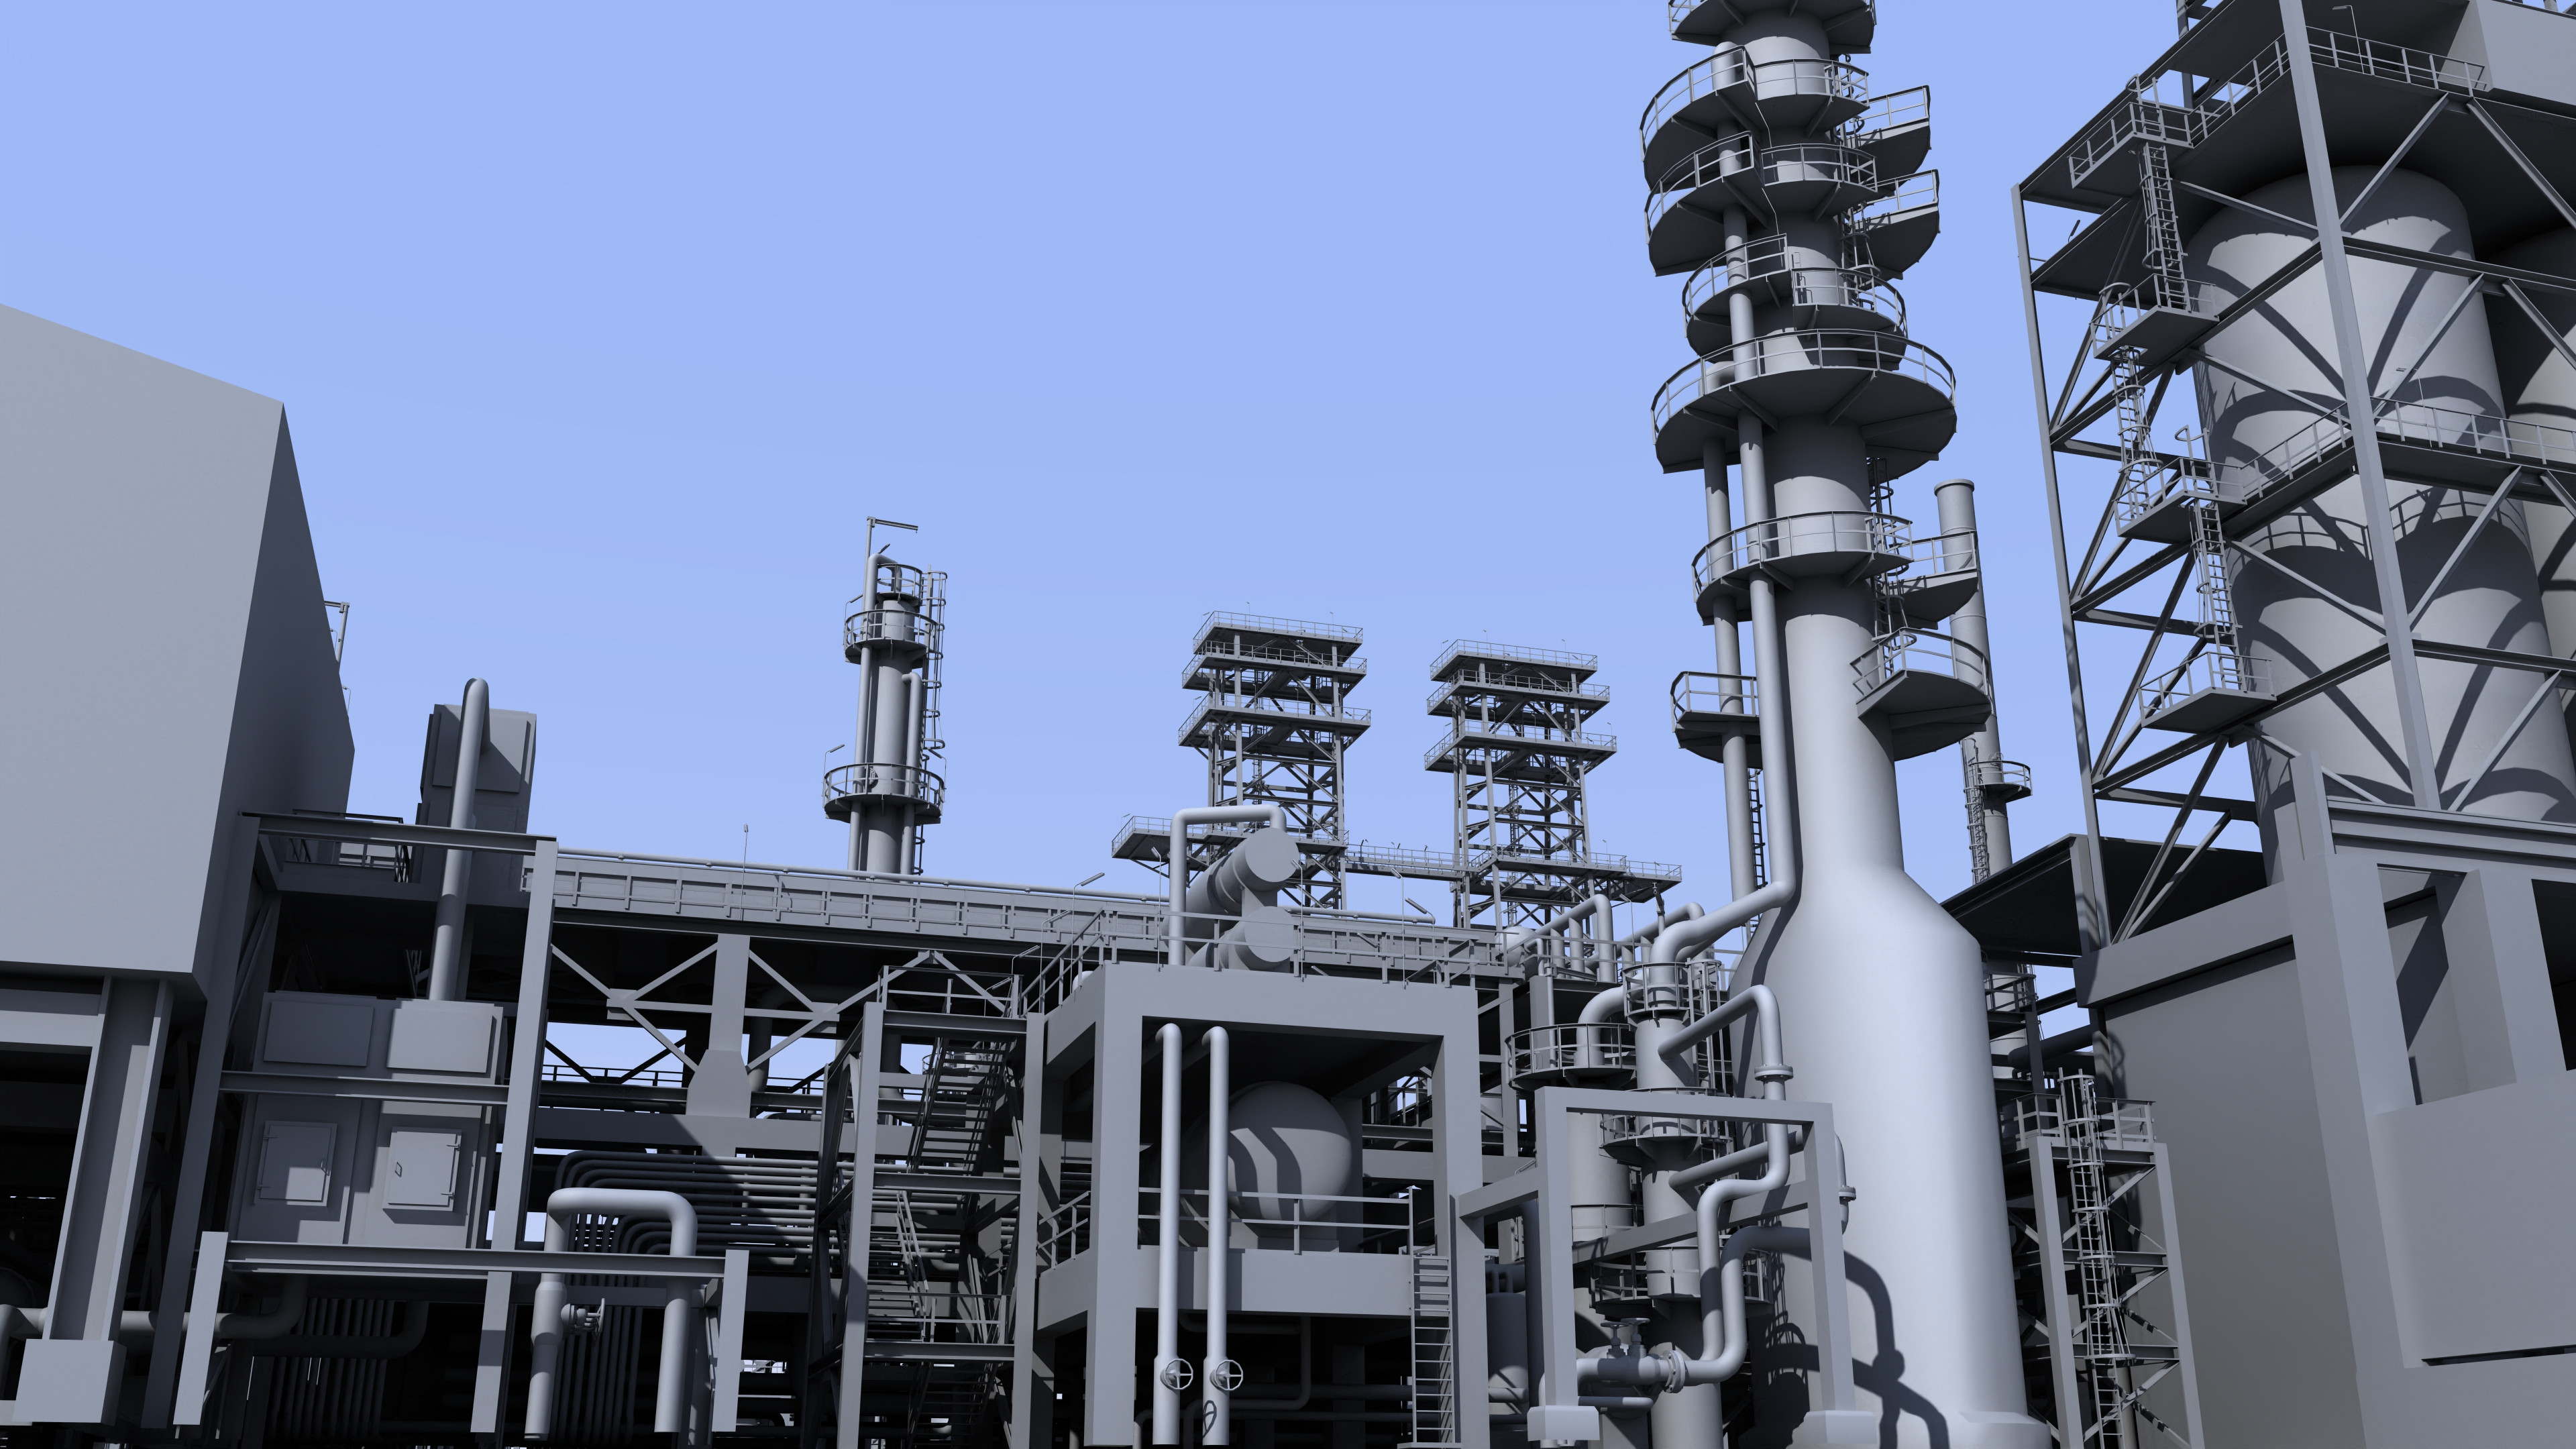 Coker unit section of oil refinery.